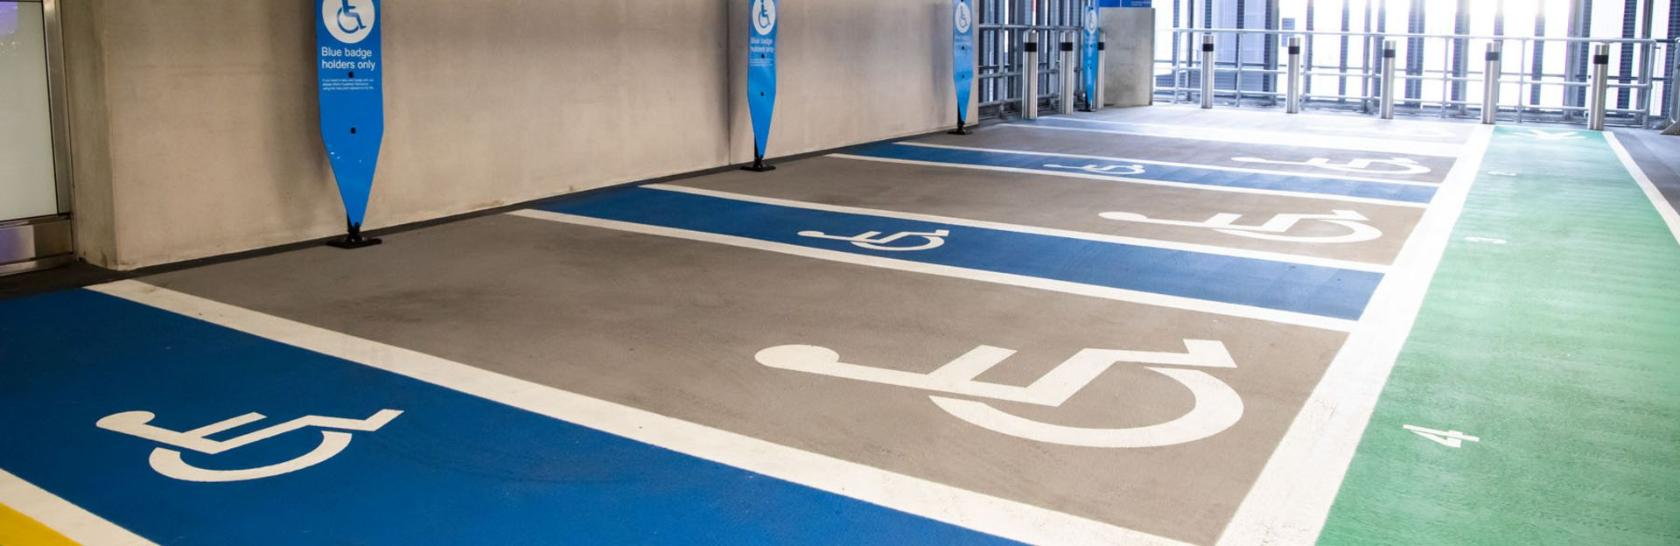 Disabled parking bays in car park